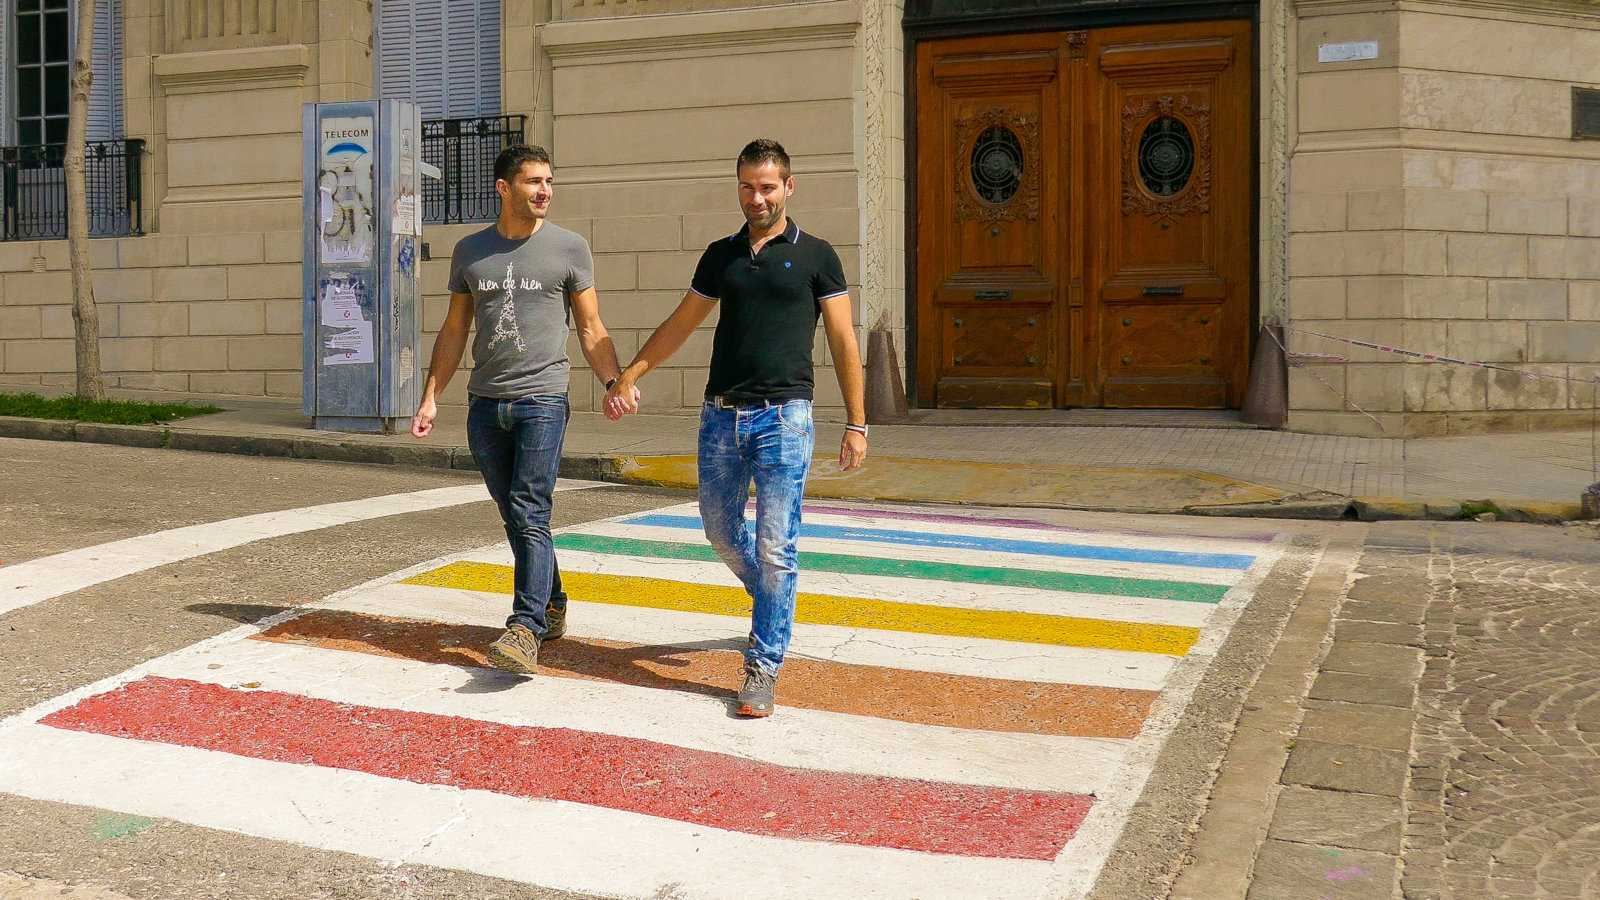 The rainbow crossing in Rosario shows how gay friendly this city is!